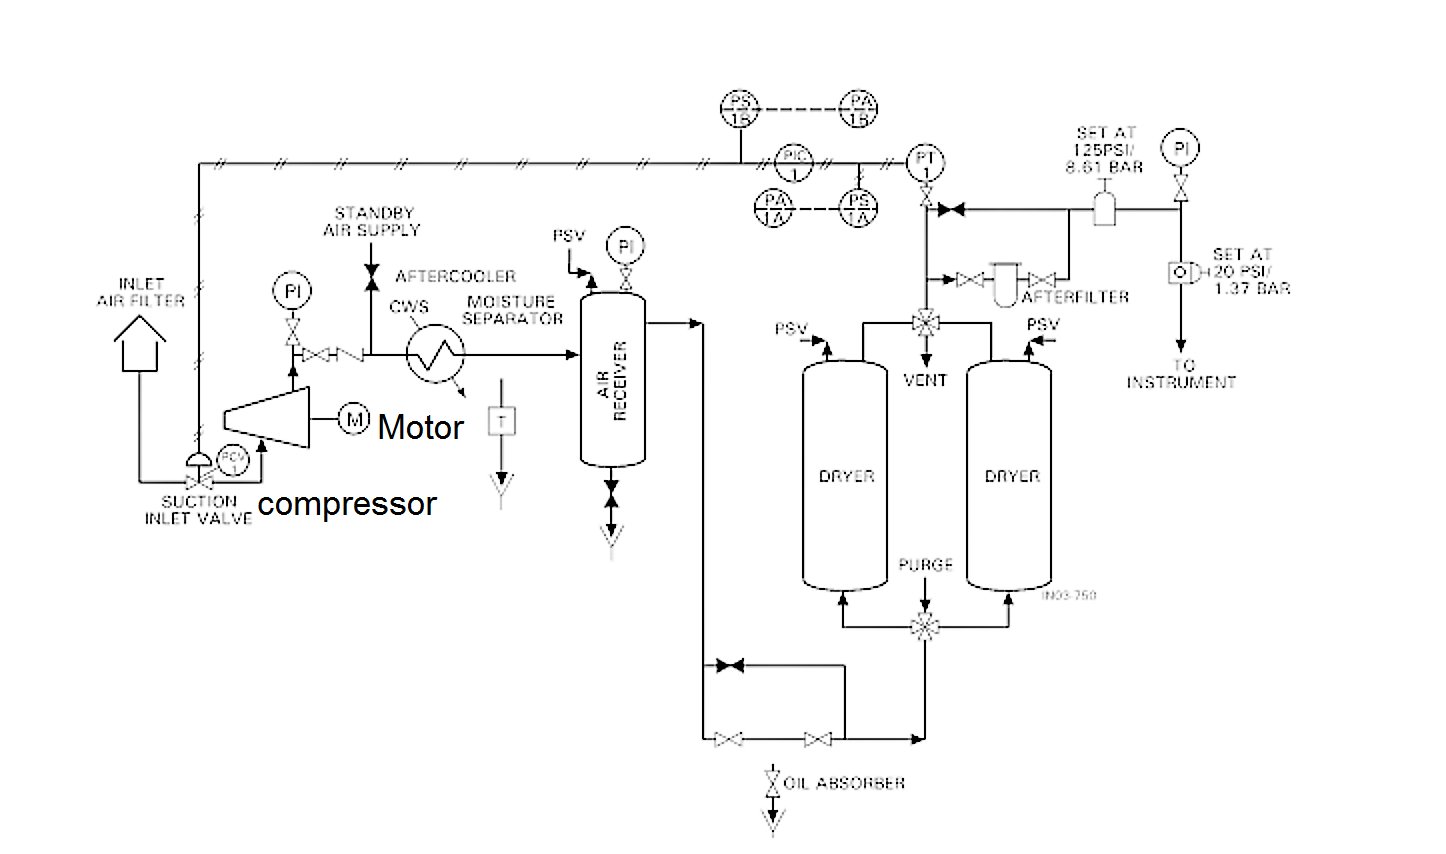 P Amp Id Diagram For Basic Air Supply System And It S Operation